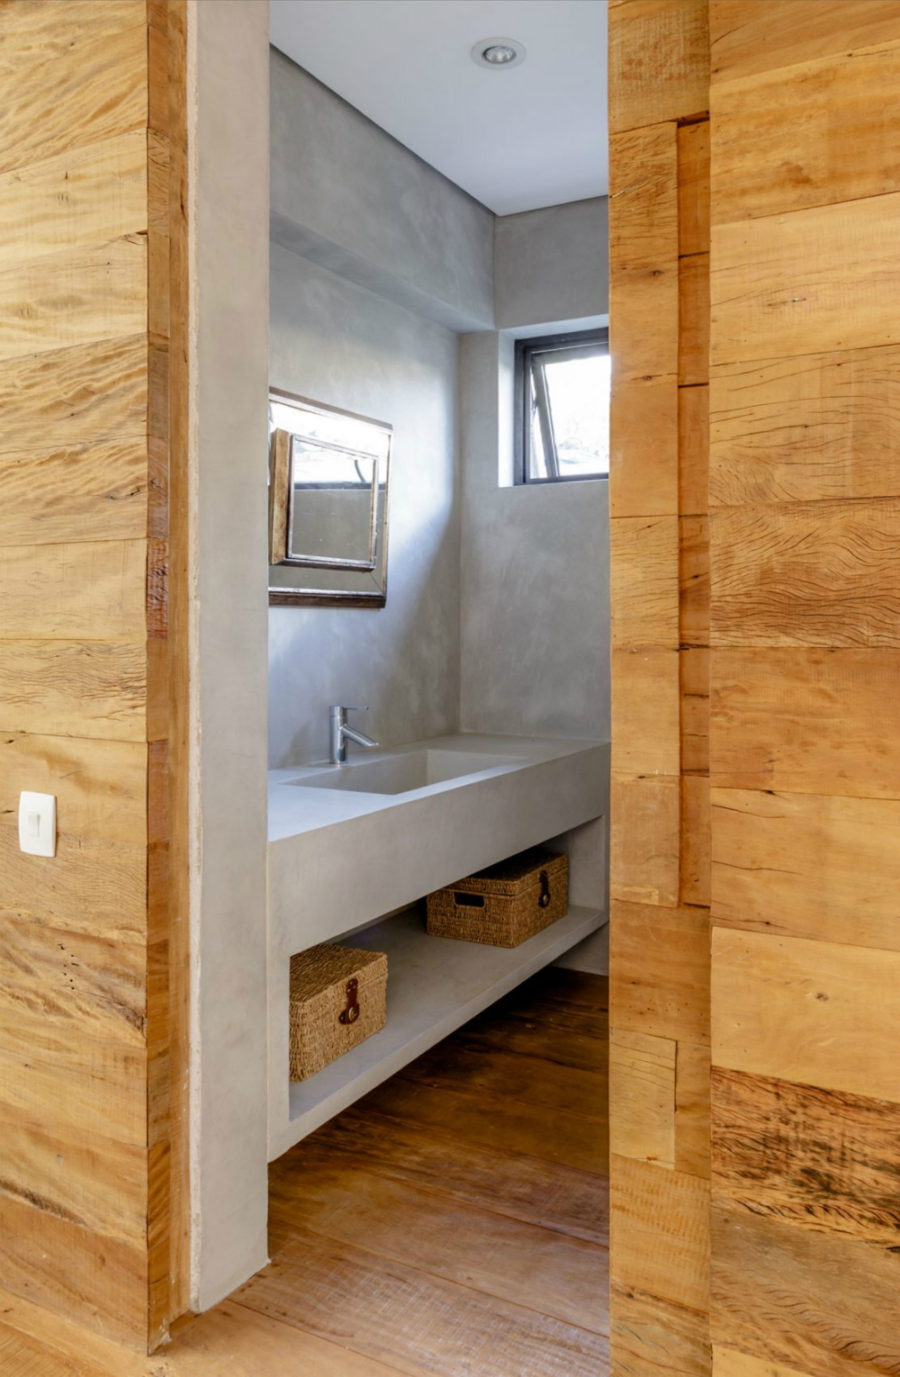 Concrete bathroom with a built-in vanity